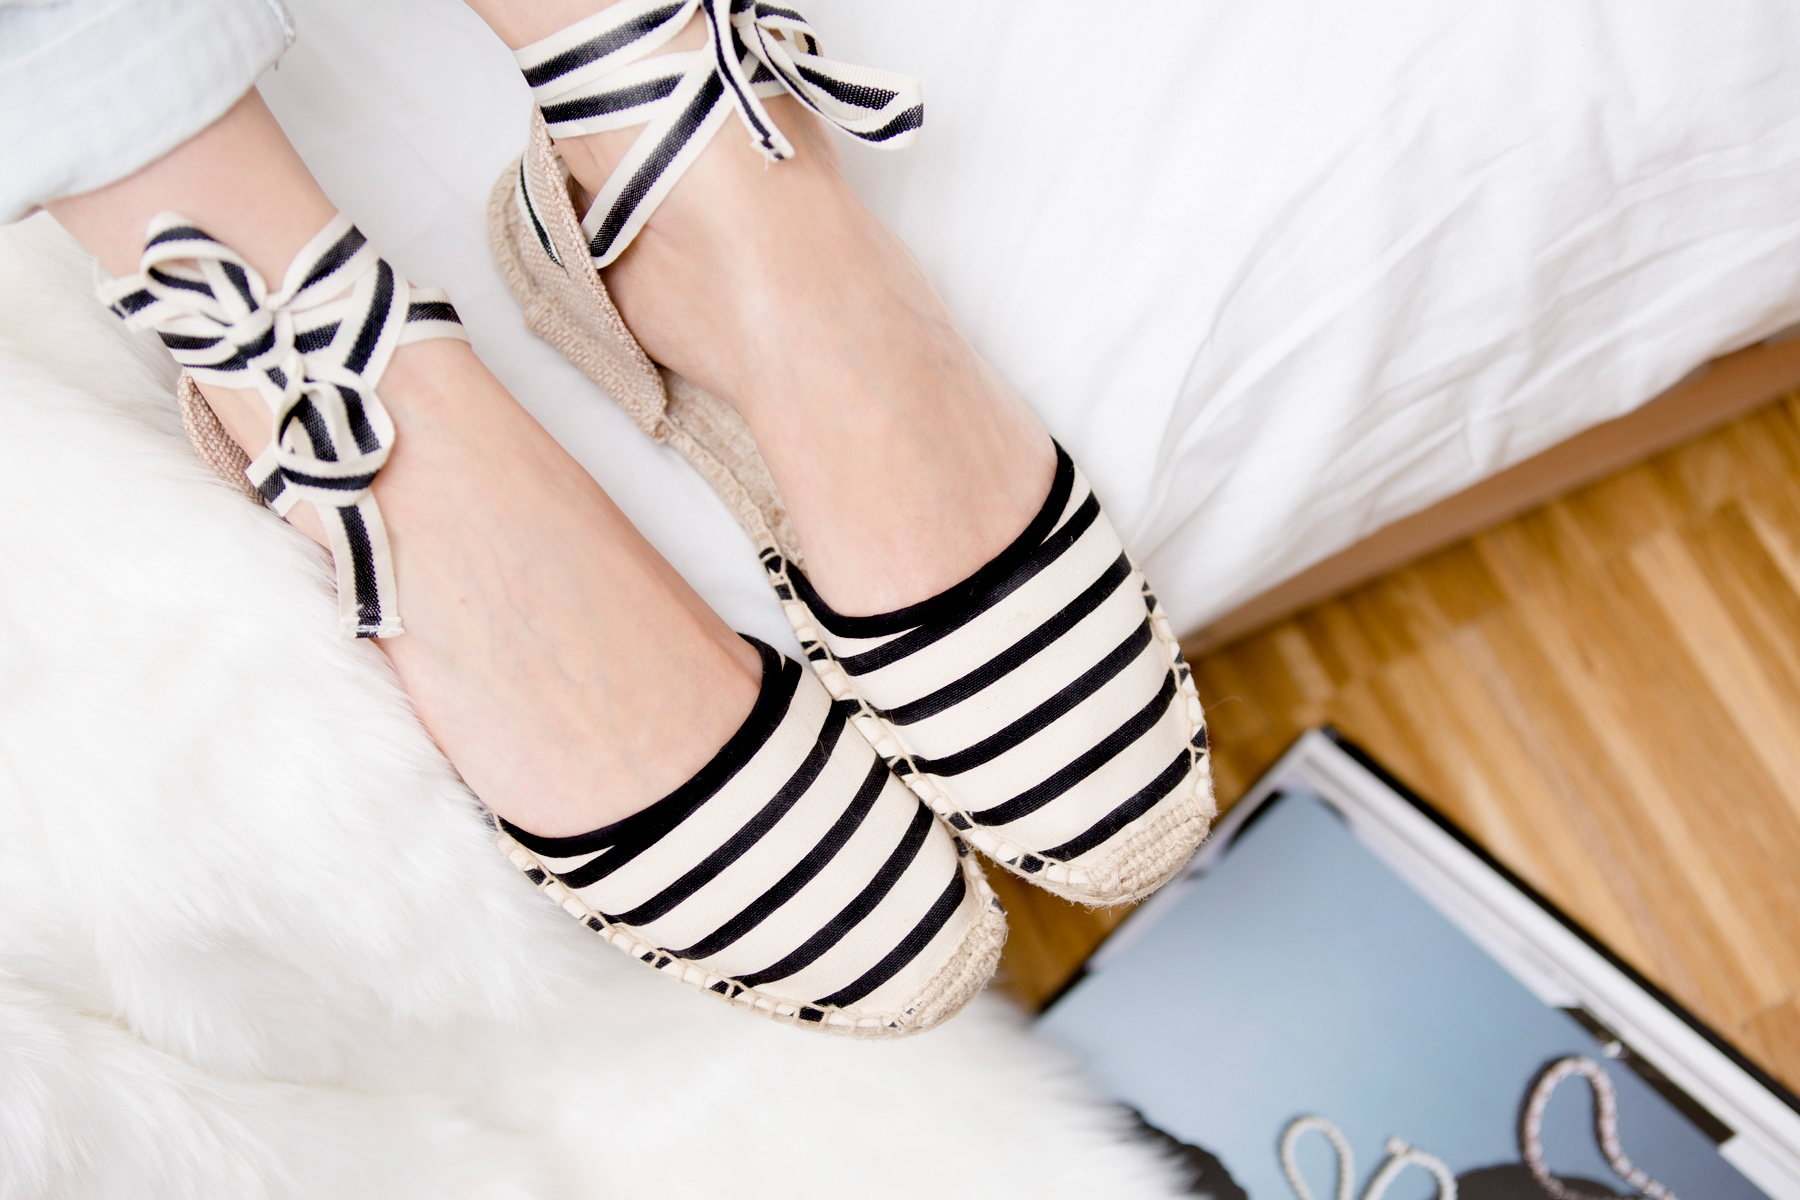 soludos striped espadrilles chanel book camelia reading relax clean white bright girl brunette bangs cats & dogs blog ricarda schernus fashionblogger düsseldorf germany berlin 2